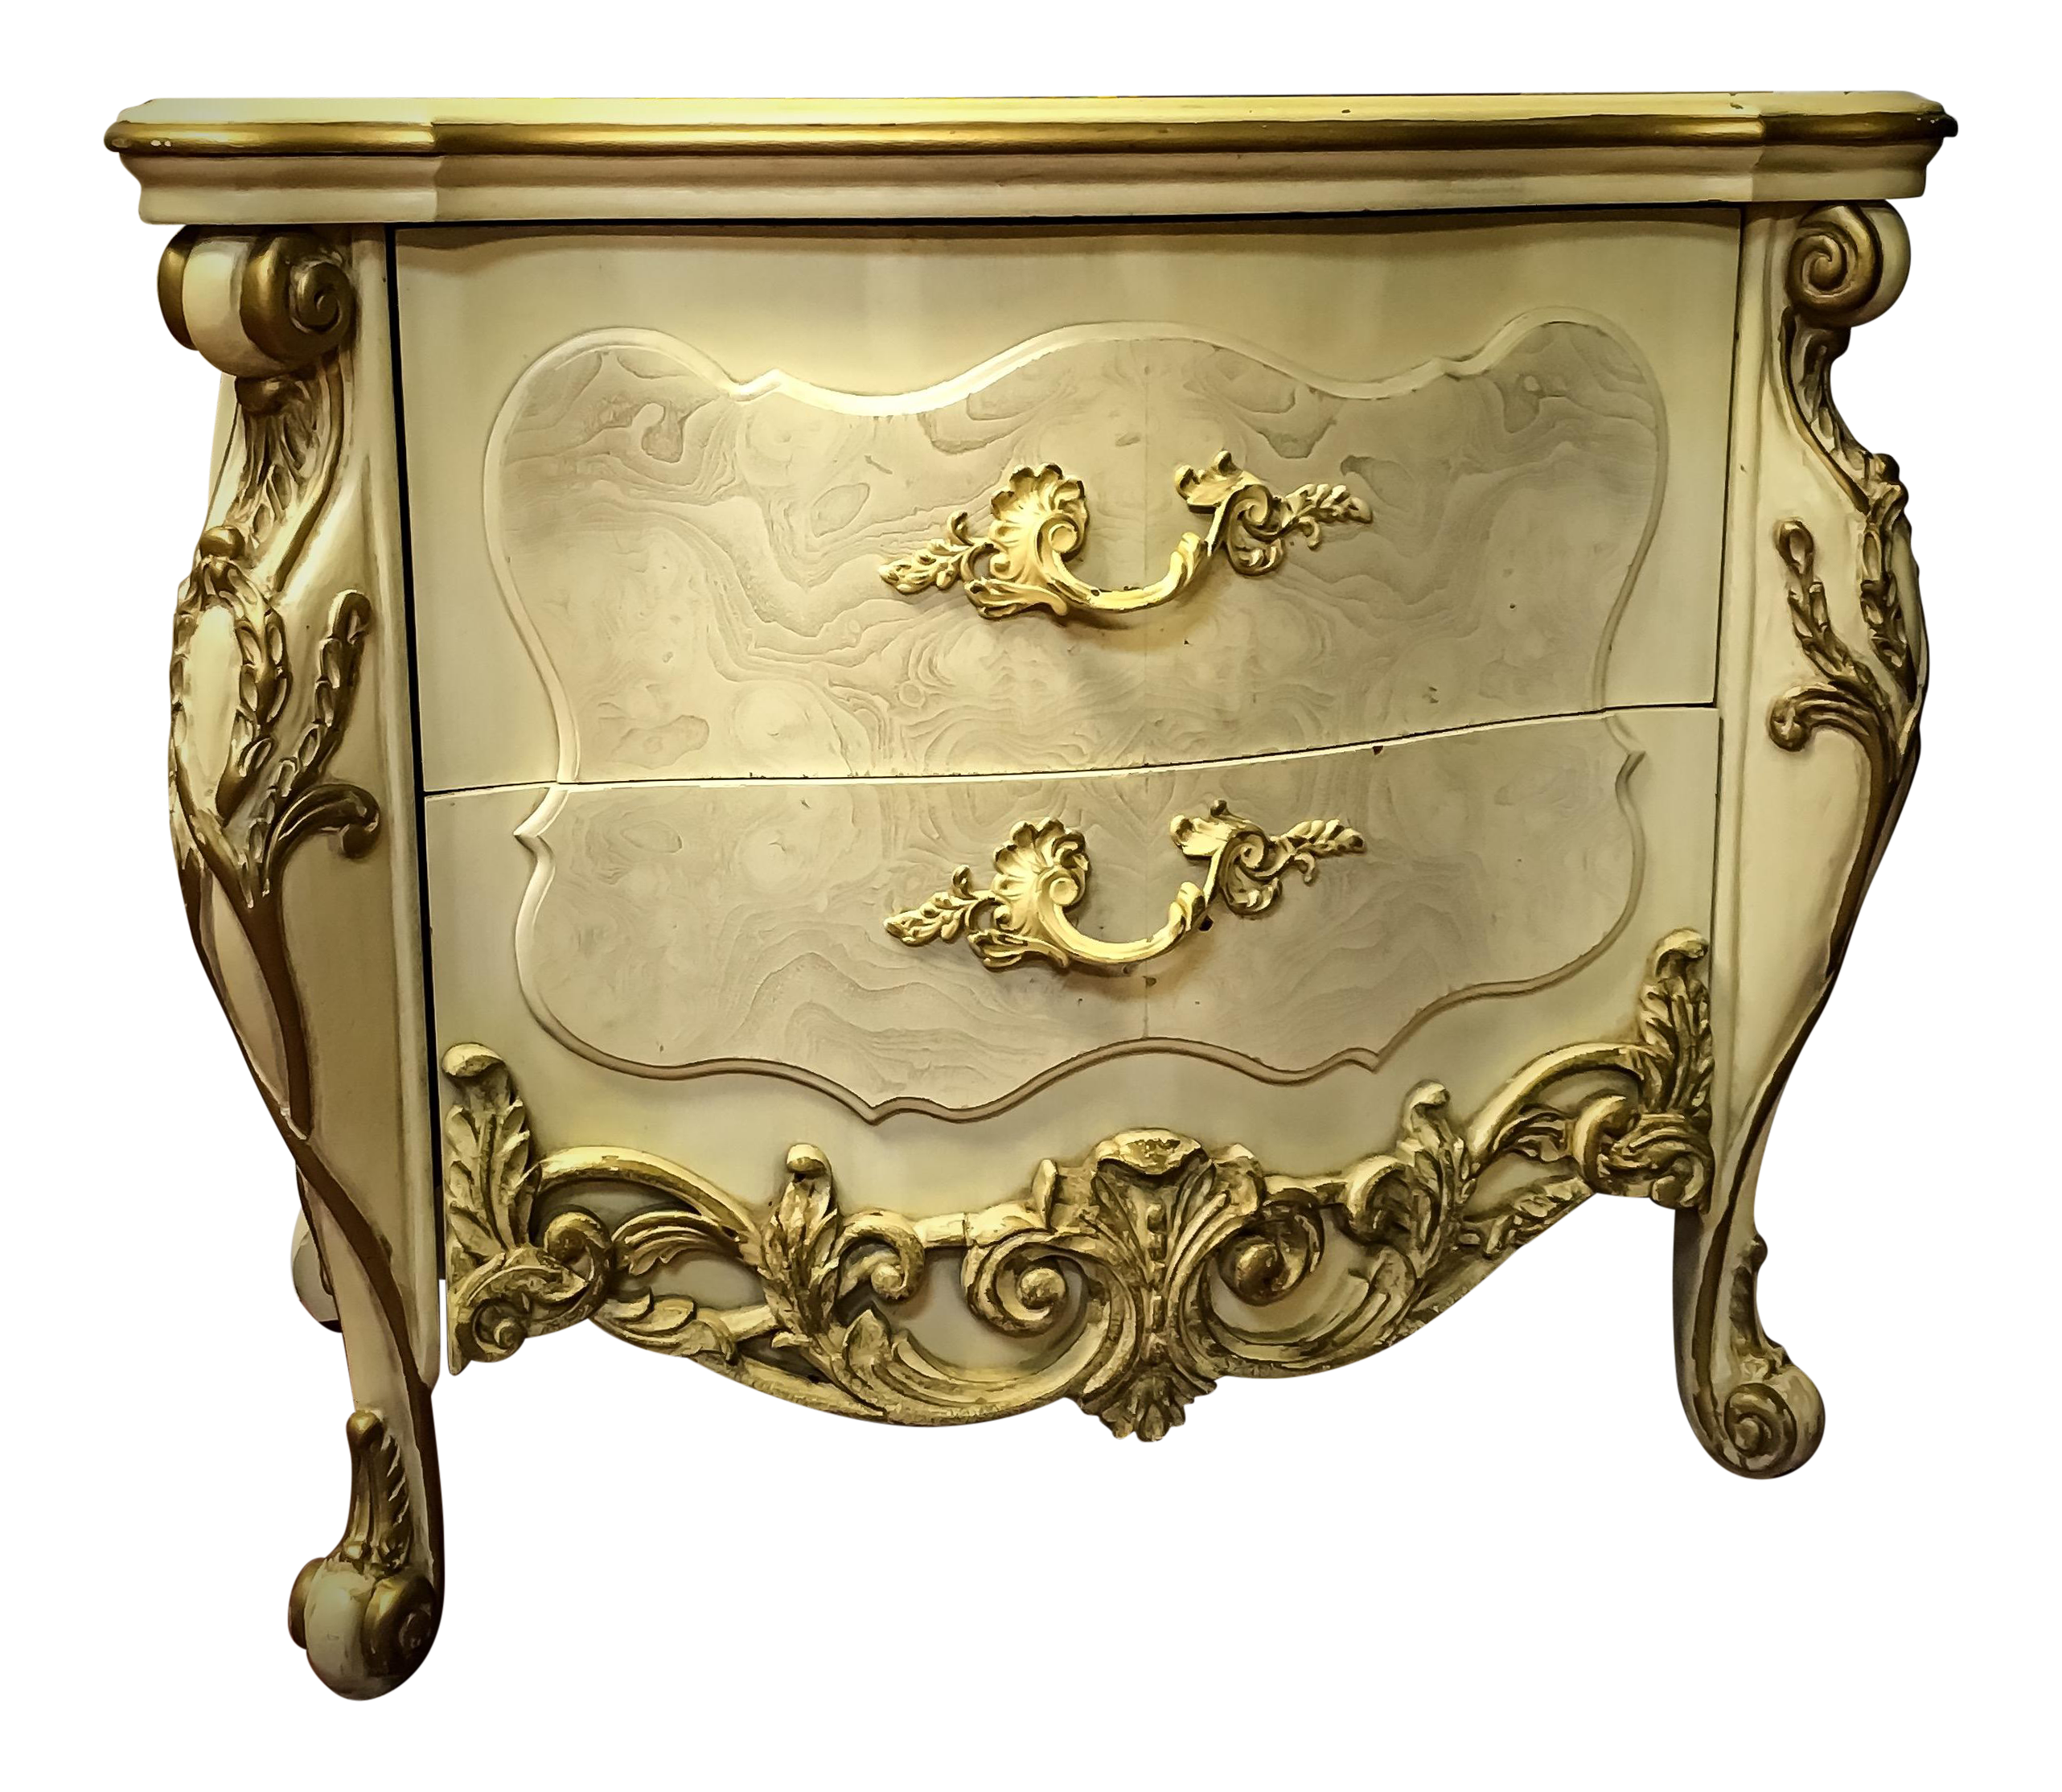 Vintage french baroque style nightstand chairish for French baroque style